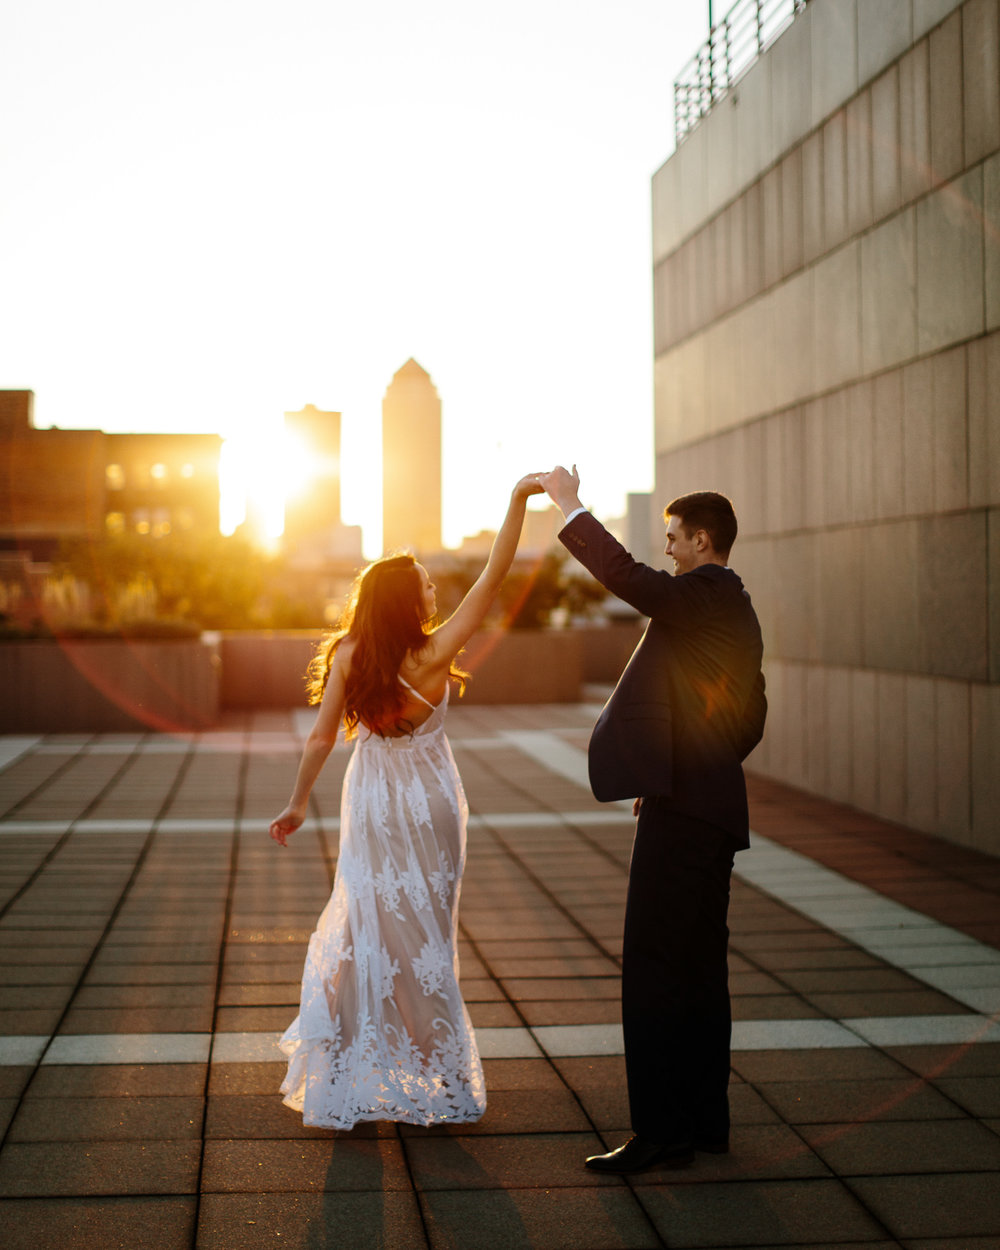 wedding-elopement-adventerous-romantic-timeless-des-moines-siouxfalls-photography-28.jpg